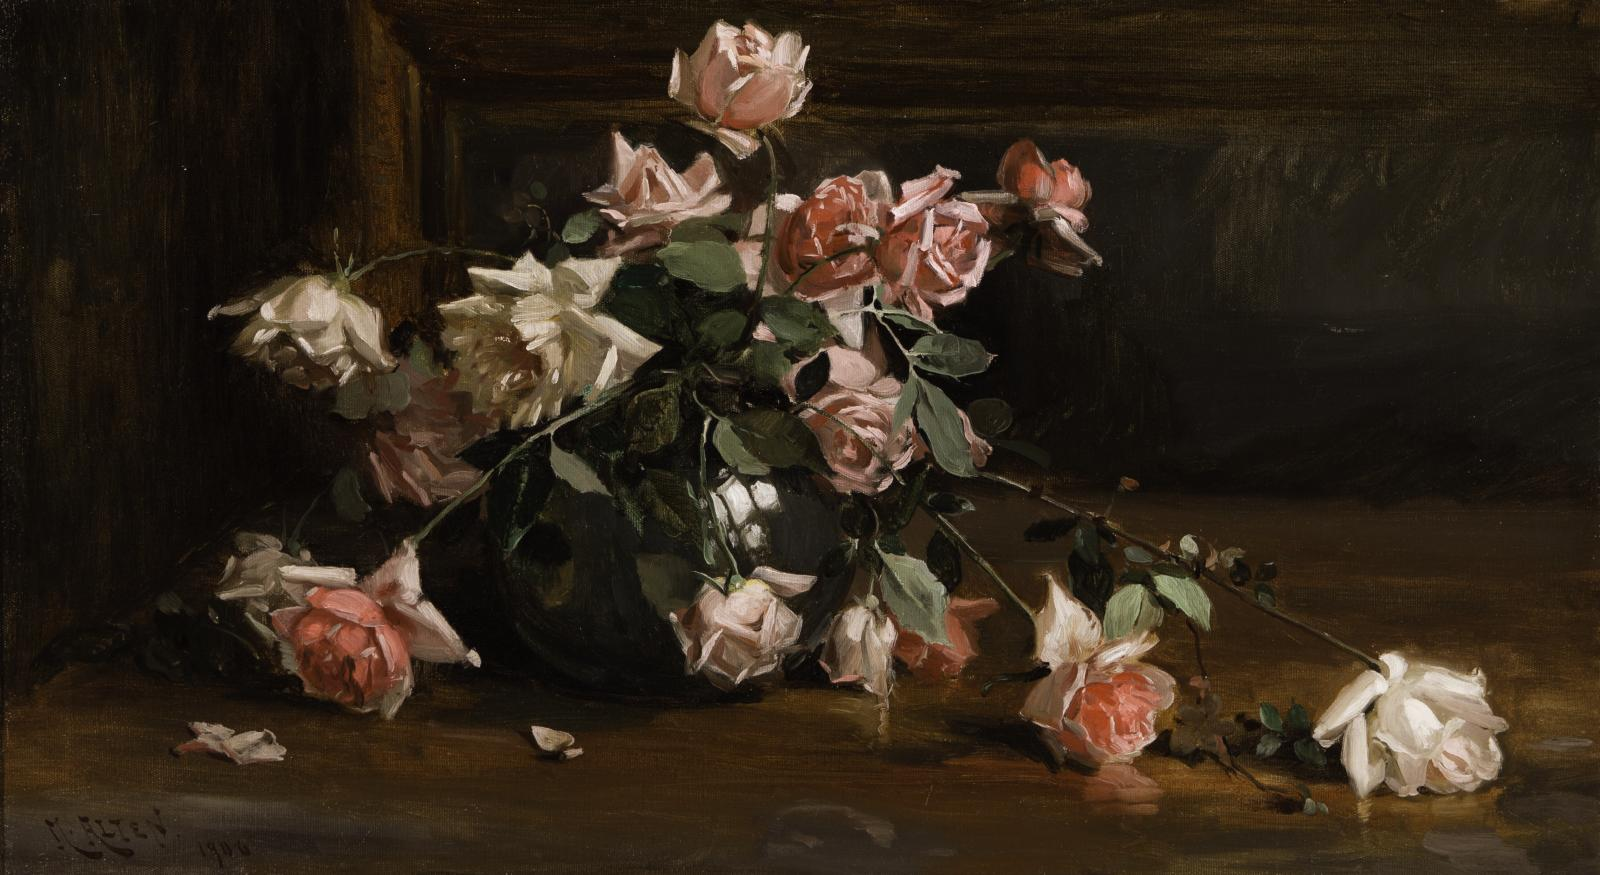 Dark background and table with white and pink roses.